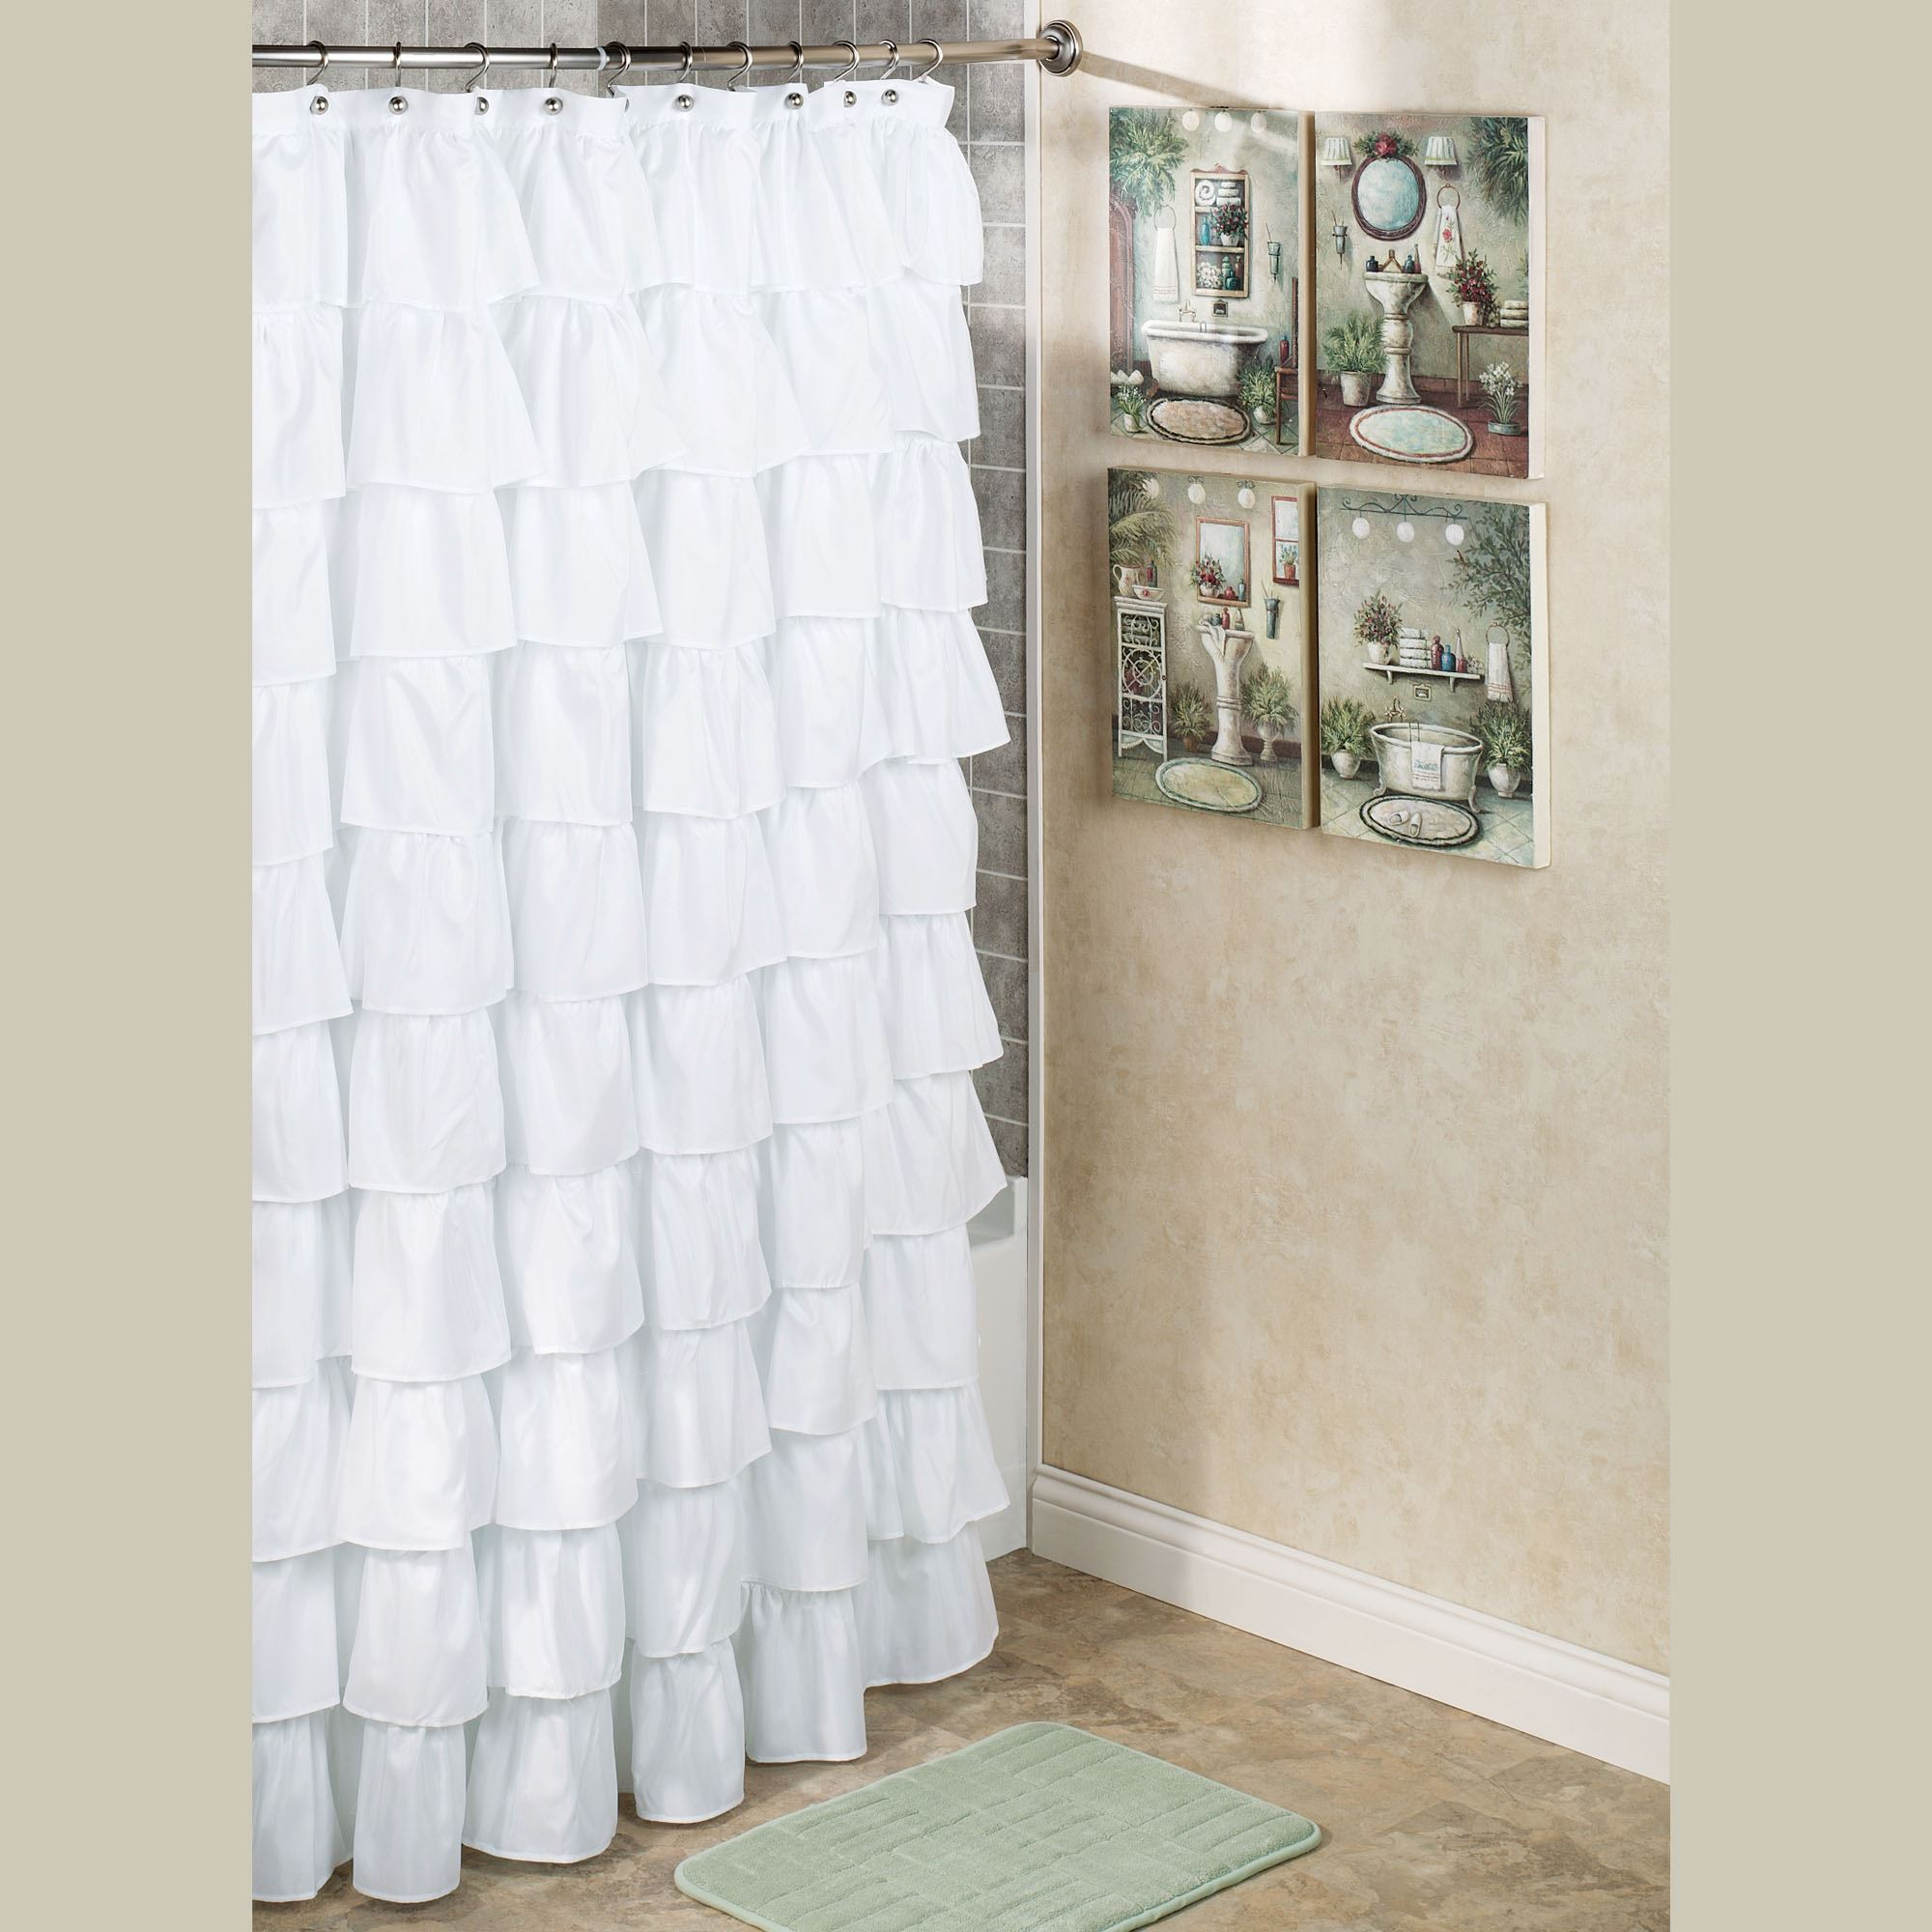 Curtain Hunting Shower Curtain Rustic Shower Curtains 82 in proportions 2000 X 2000